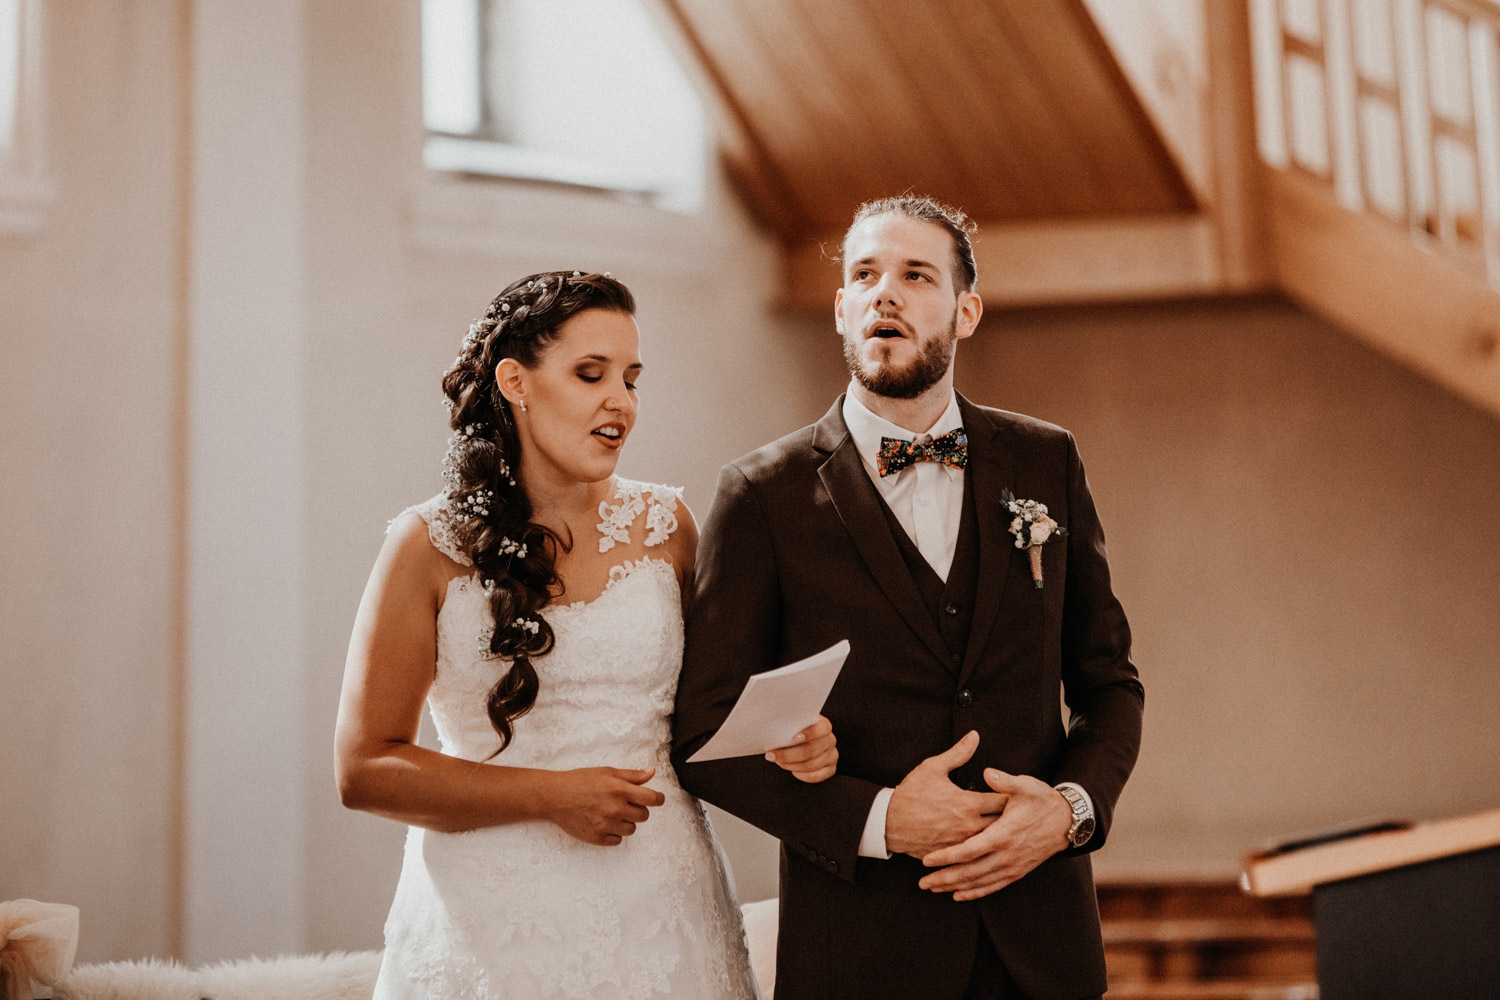 wedding photographer switzerland bride groom church wedding singing